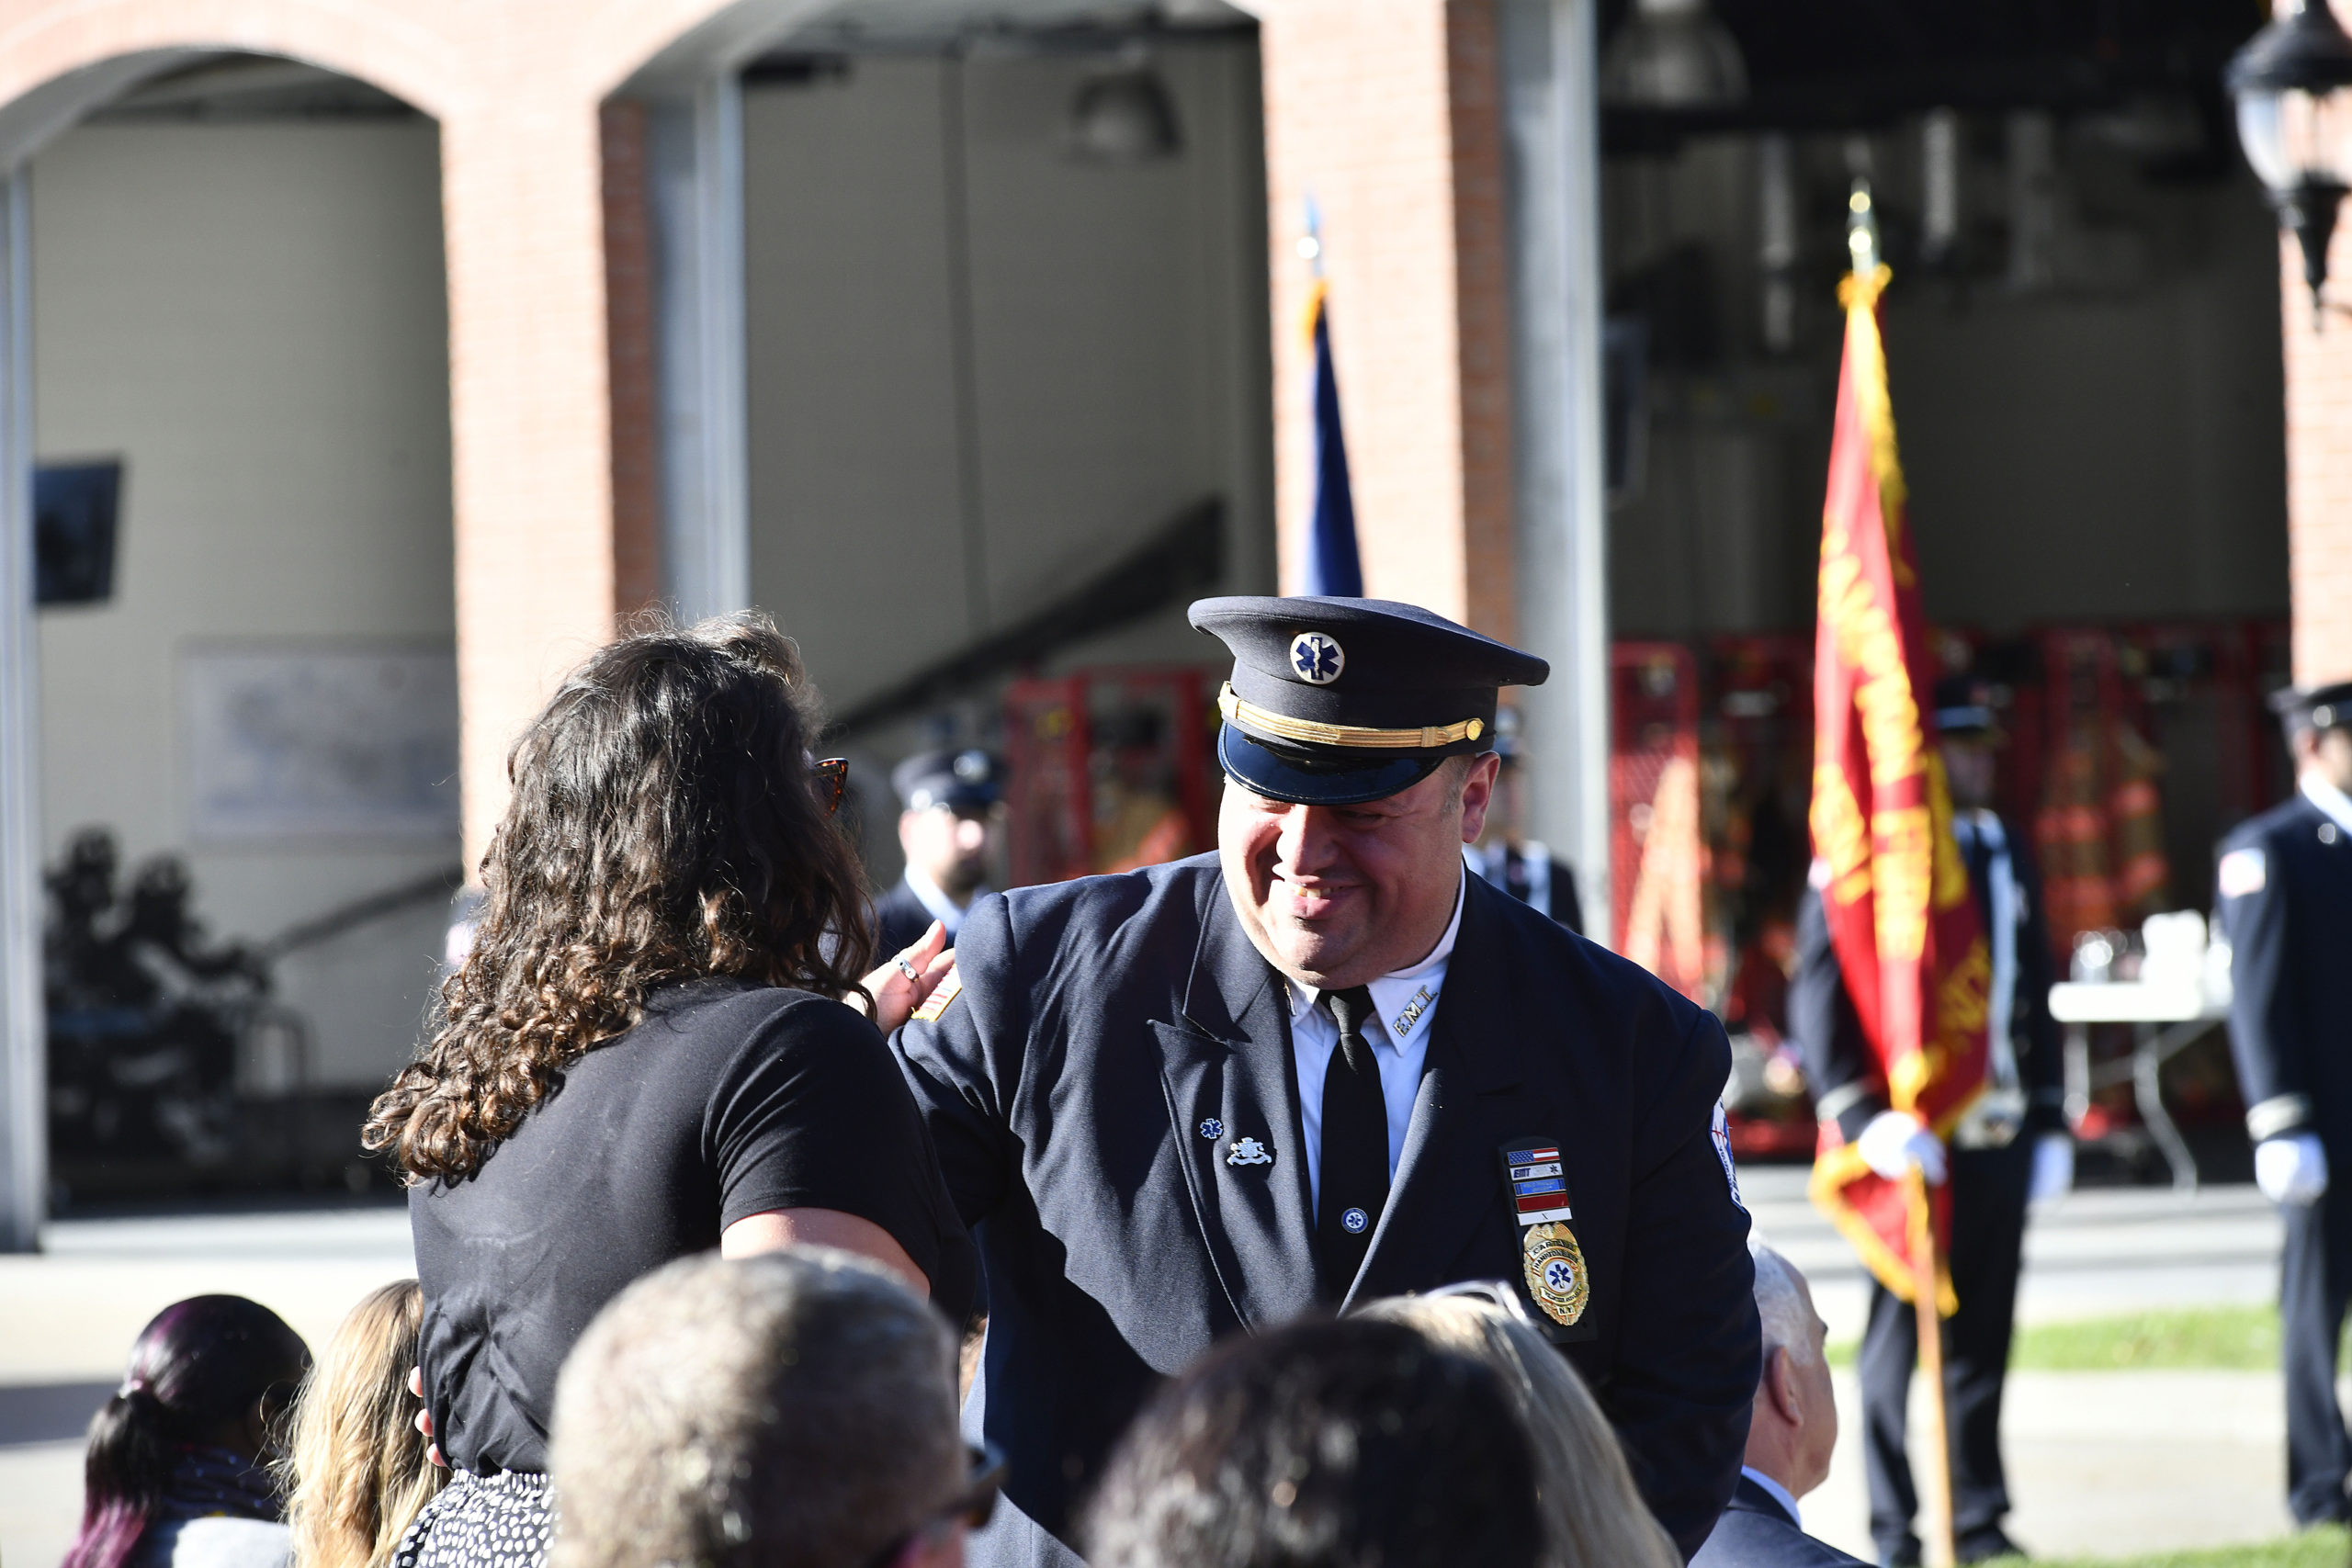 Speaker Matthew O'Connor of Hampton Bays with his daughter. O'Connor spoke about his experience on 9/11. He is a member of the Hampton Bays Volunteer Ambulance.